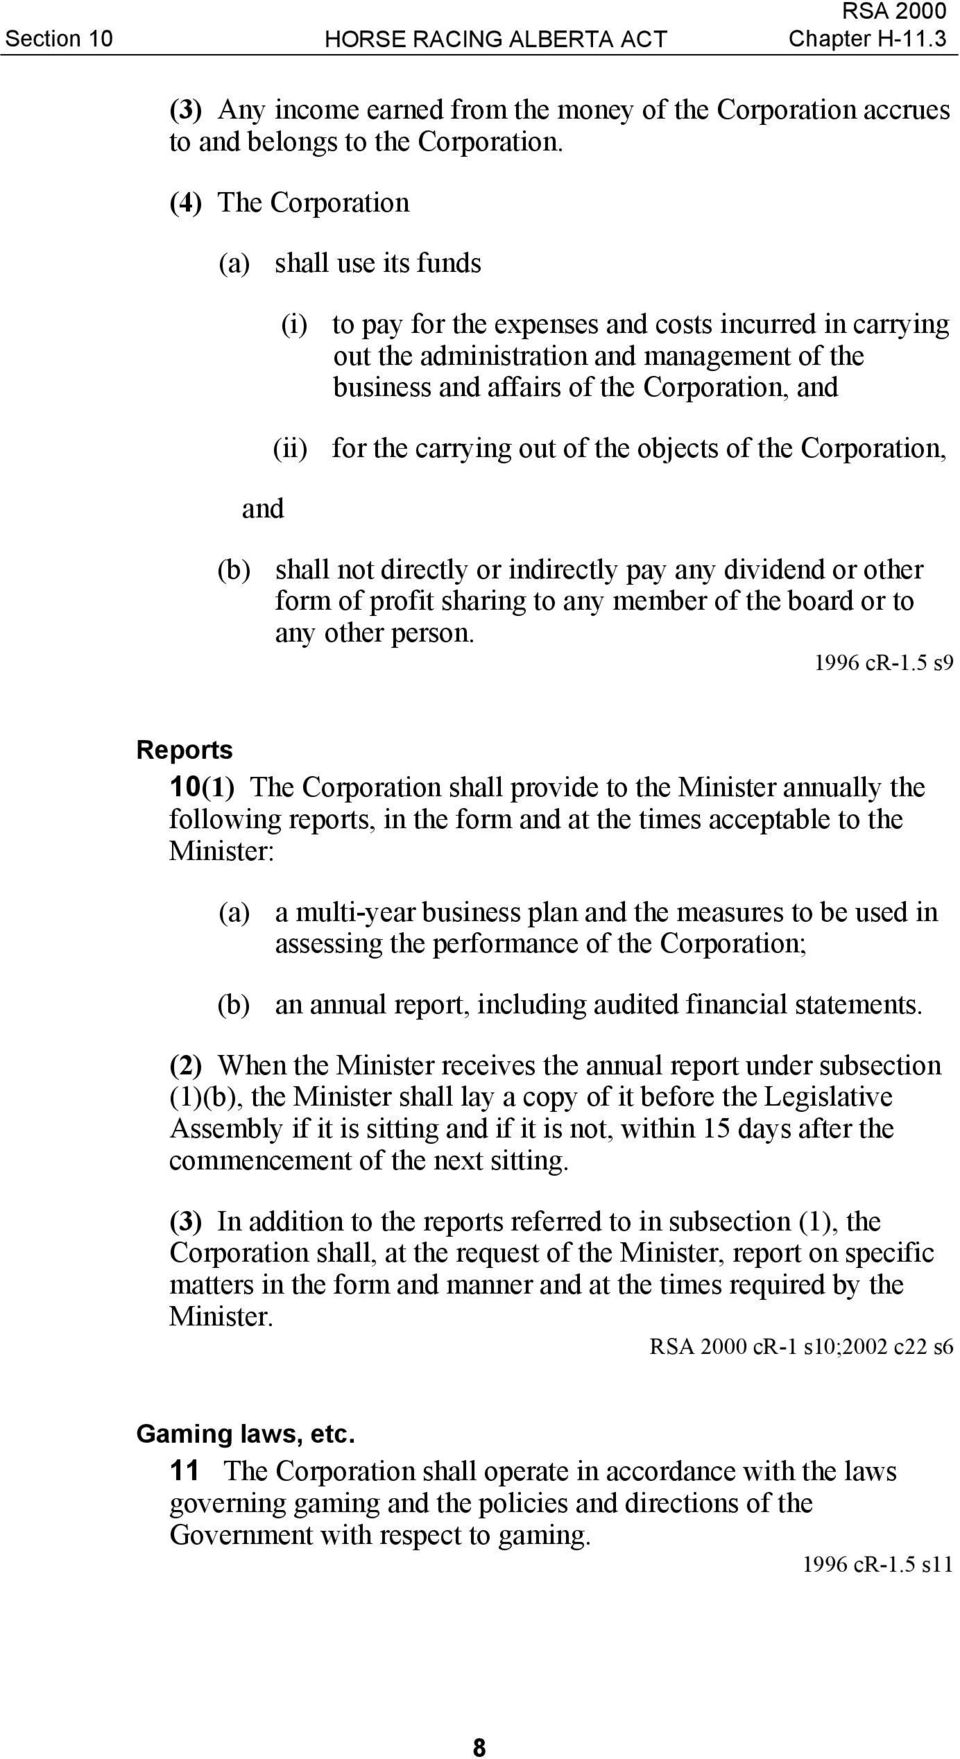 (ii) for the carrying out of the objects of the Corporation, (b) shall not directly or indirectly pay any dividend or other form of profit sharing to any member of the board or to any other person.